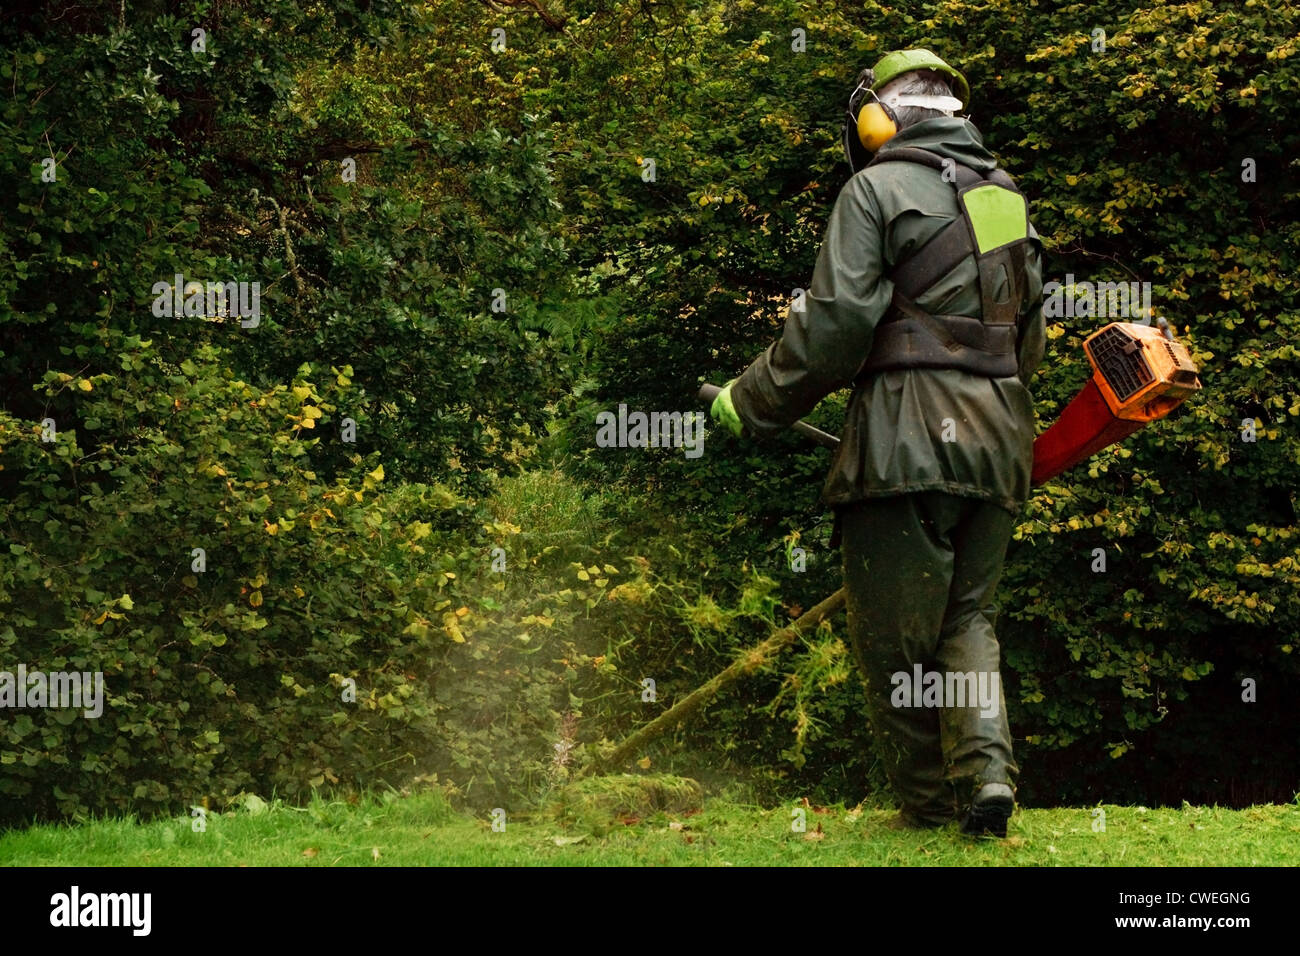 An agricultural worker trimming the brush with a petrol strimmer - Stock Image